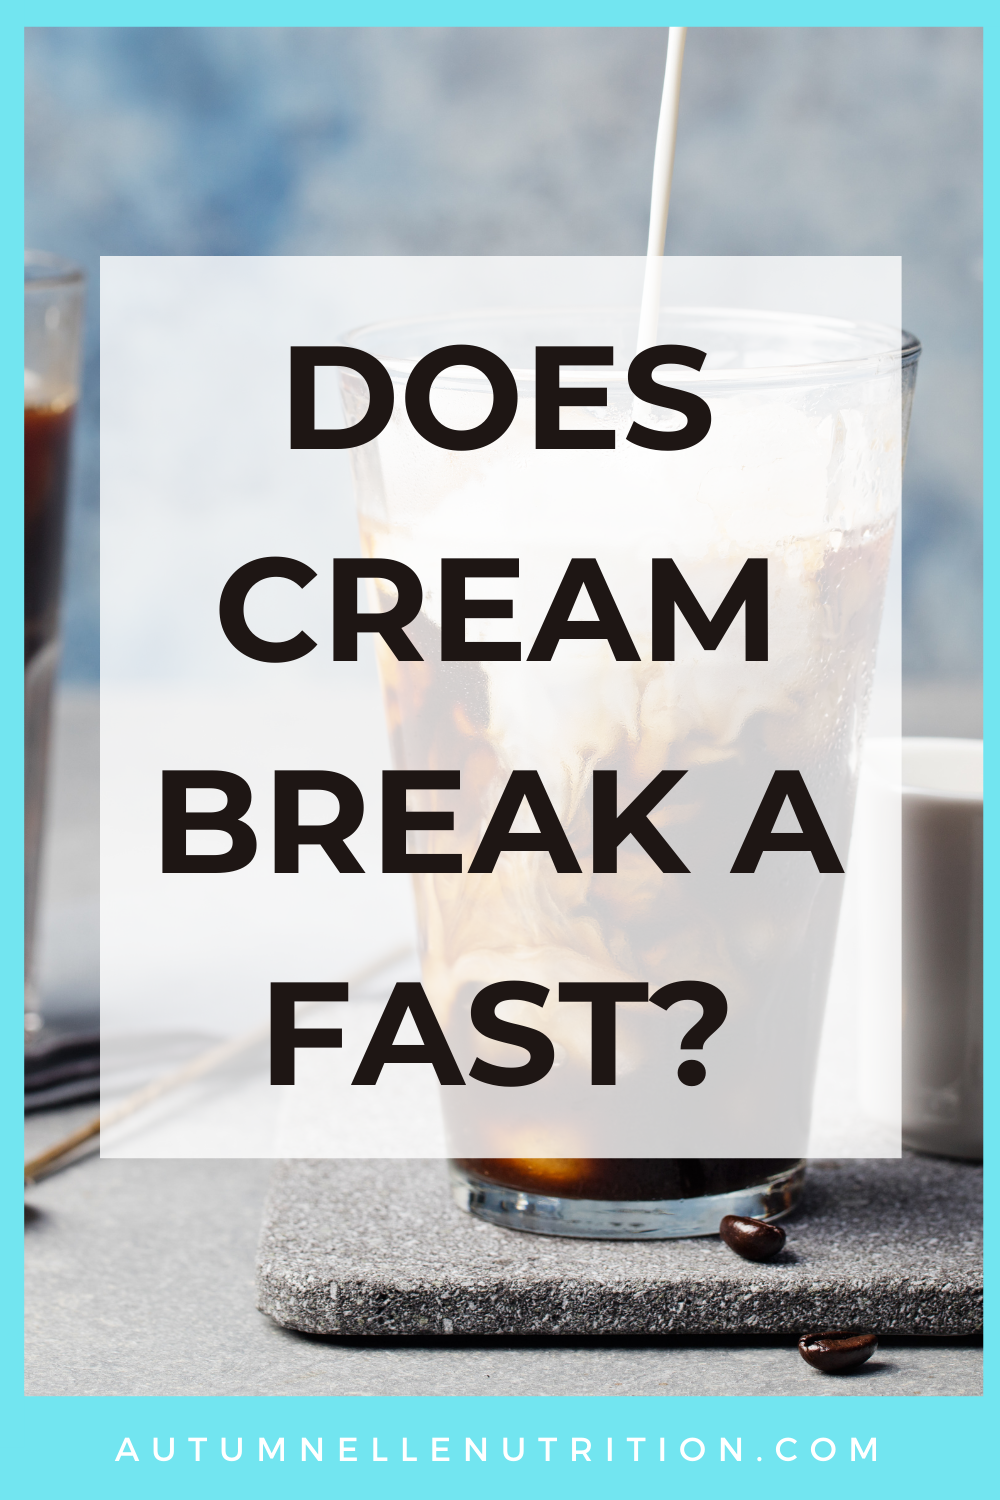 Does Heavy Cream Break A Fast?